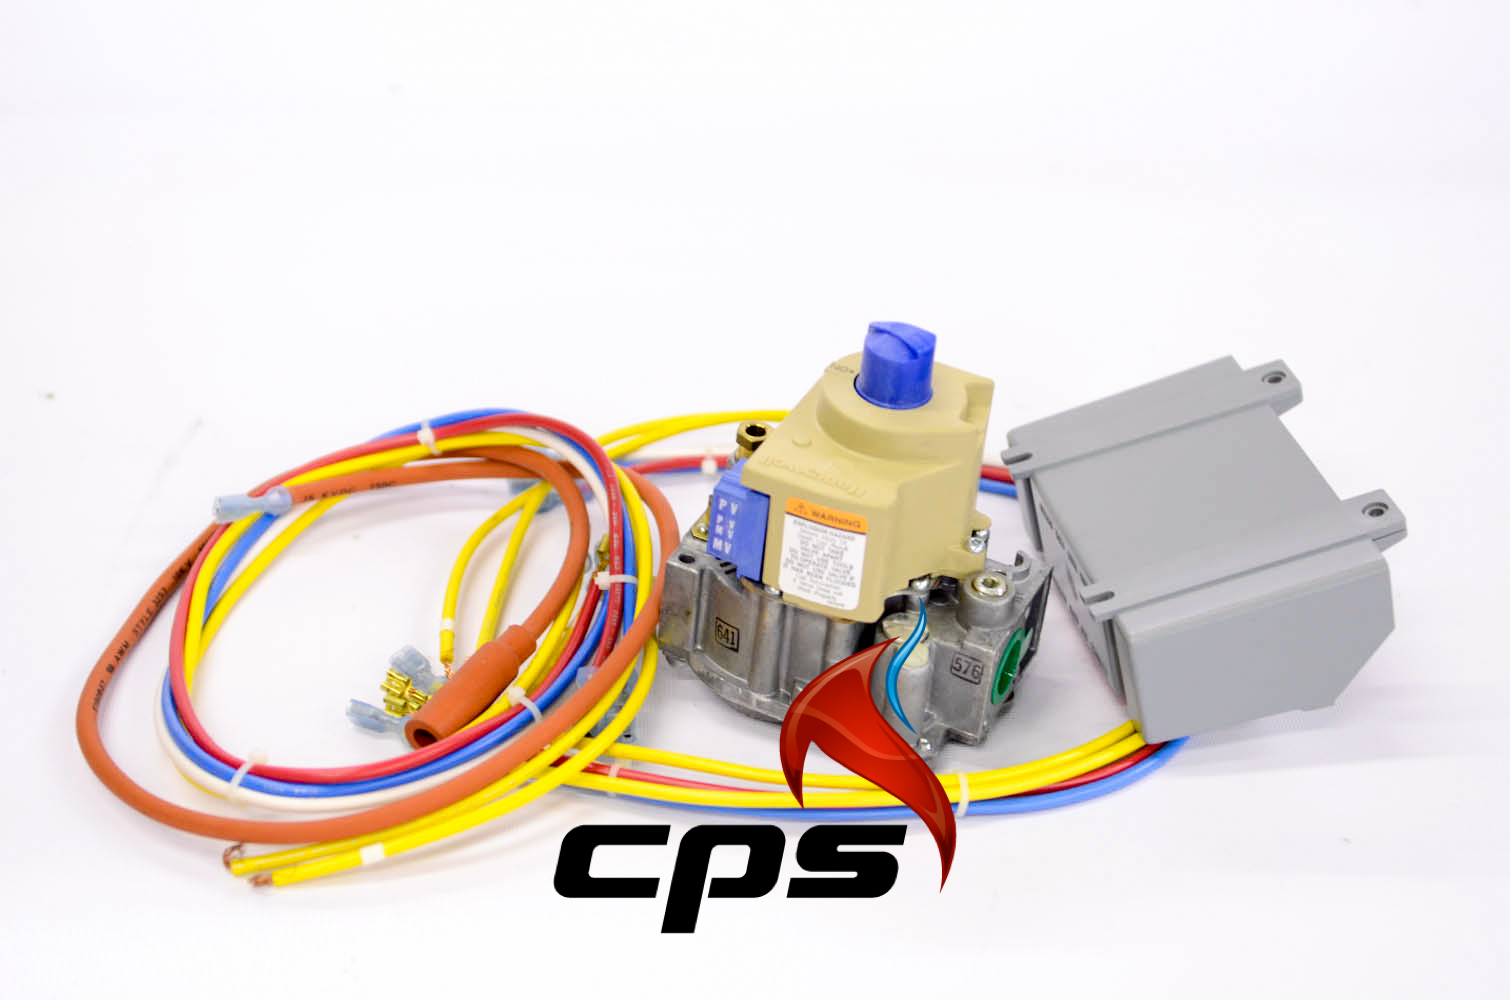 42810-0082 - Middleby - CPS